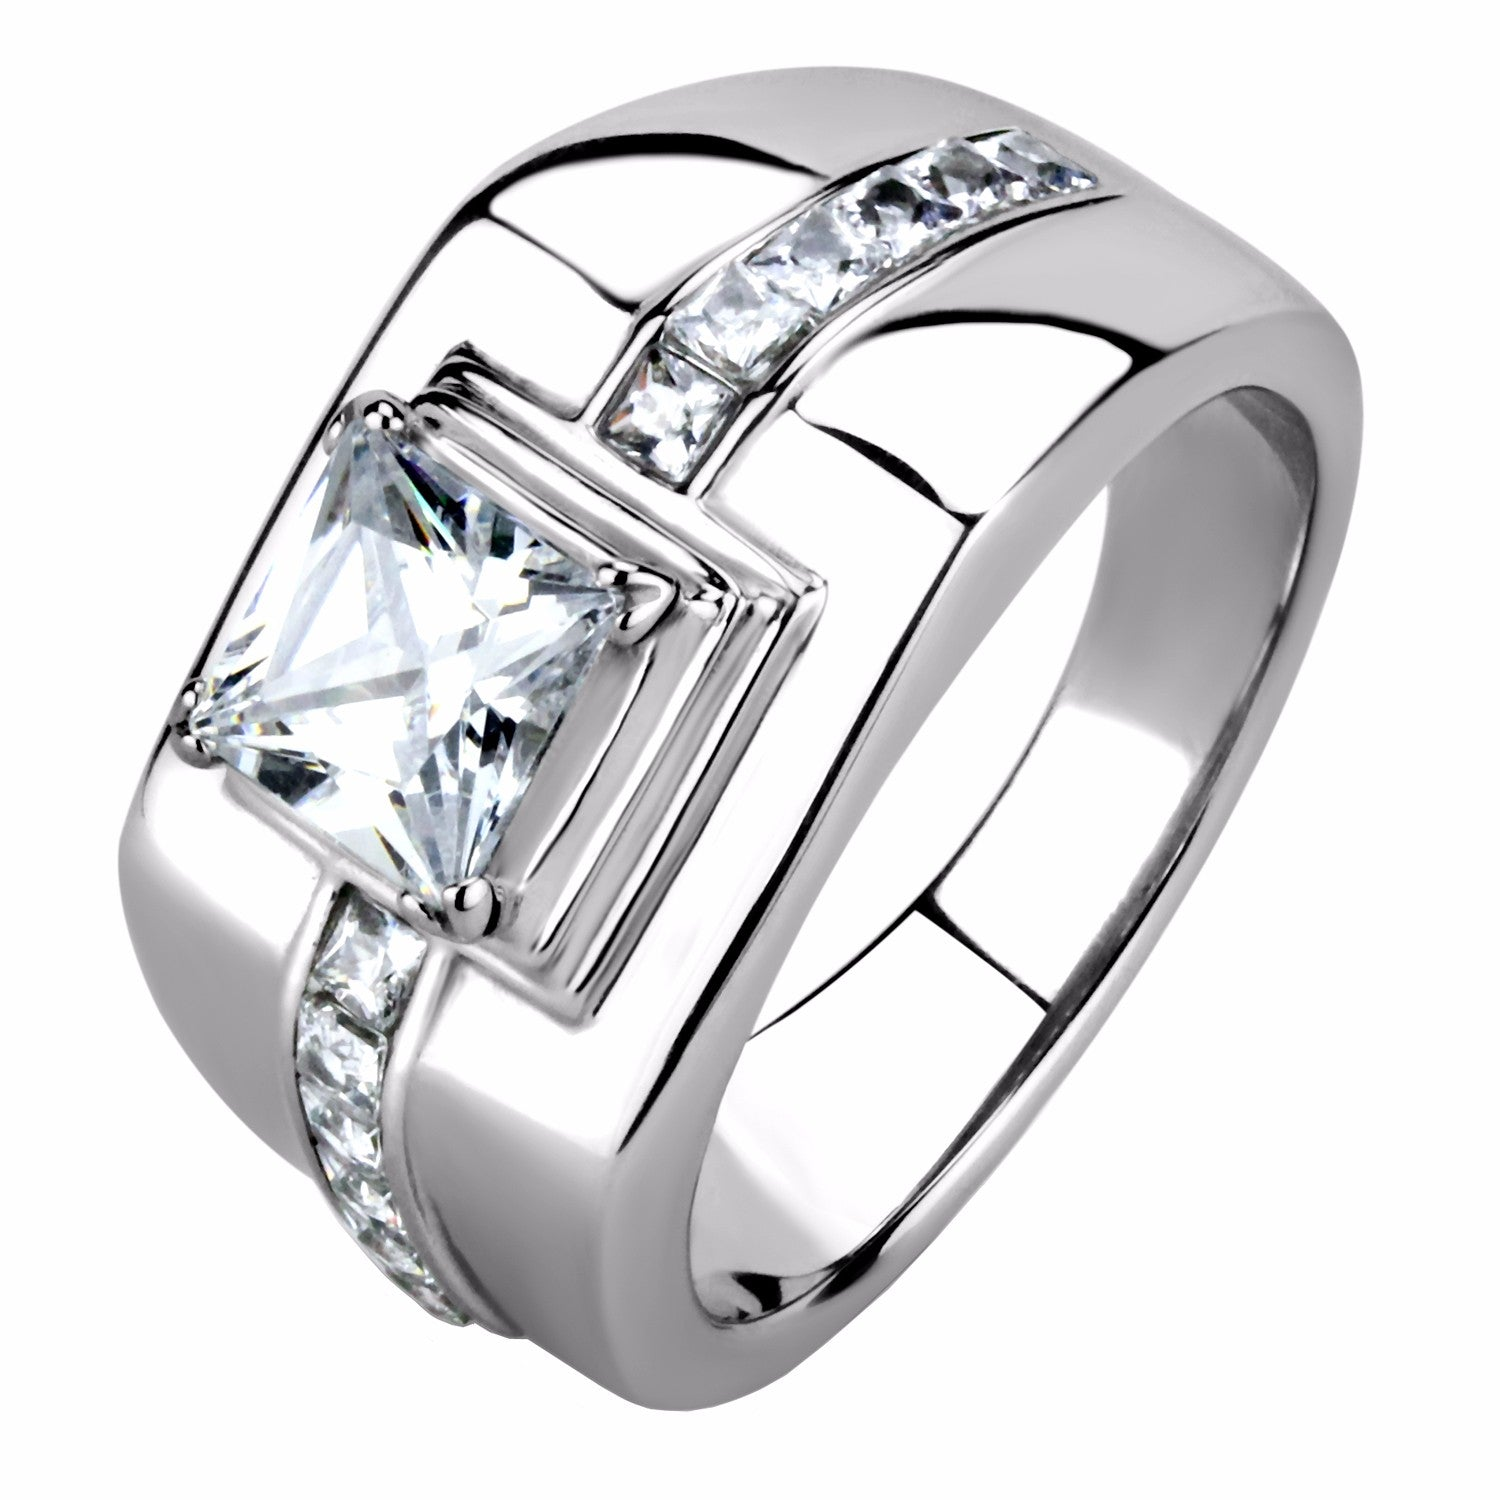 7x7mm Princess Cut CZ Center Small Princess CZ Side Stainless Steel Mens Ring - LA NY Jewelry